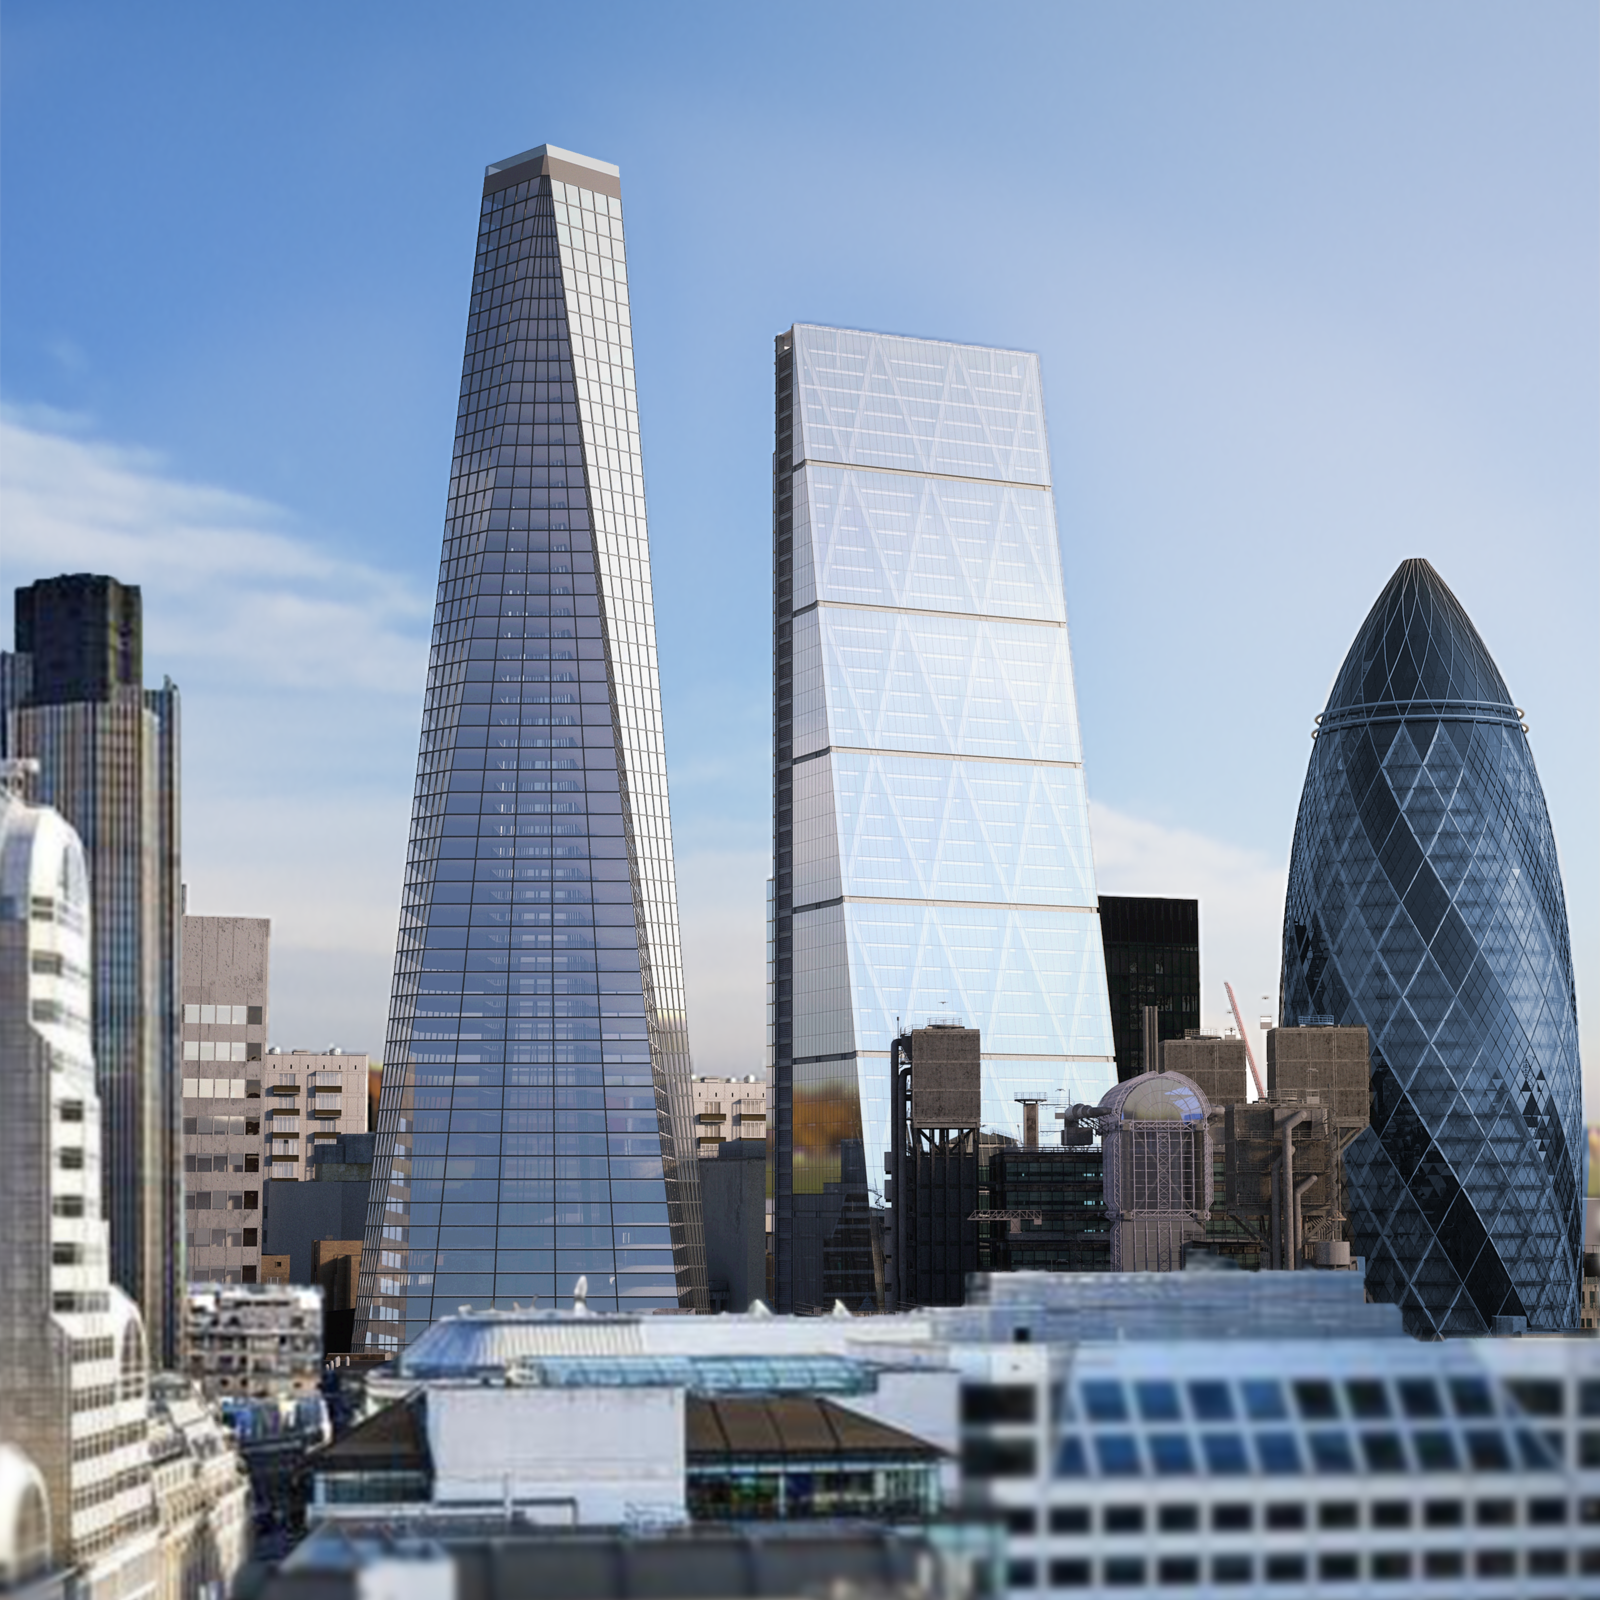 Compass Pools's proposal for Infinity London includes a five-star hotel on the top floors, and a thrilling, 360-degree infinity pool 55 stories up.  Photo 1 of 4 in The World's First 360-Degree Infinity Pool Is Proposed to Tower Above London